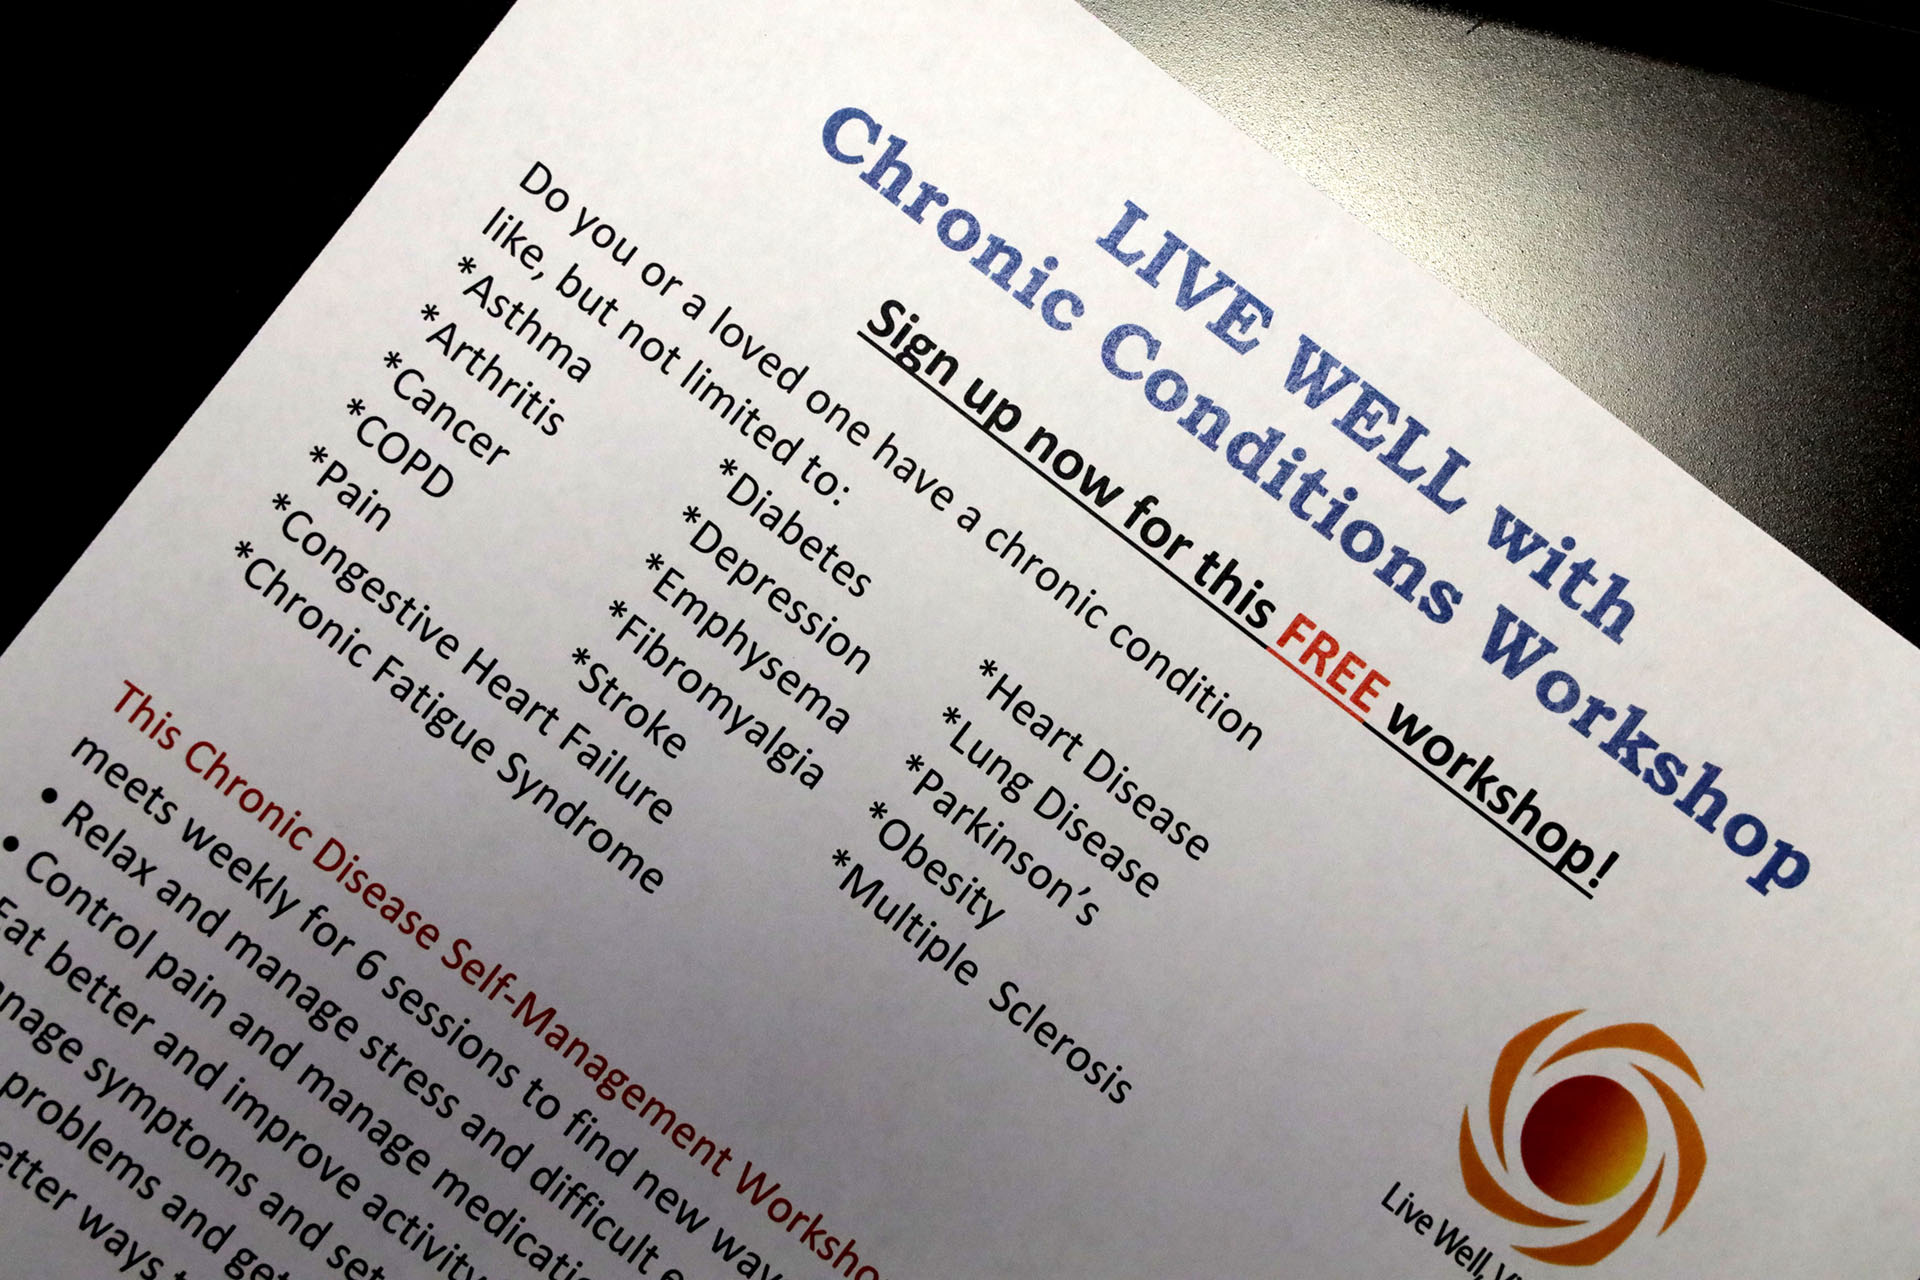 Workshop for individuals with chronic conditions scheduled